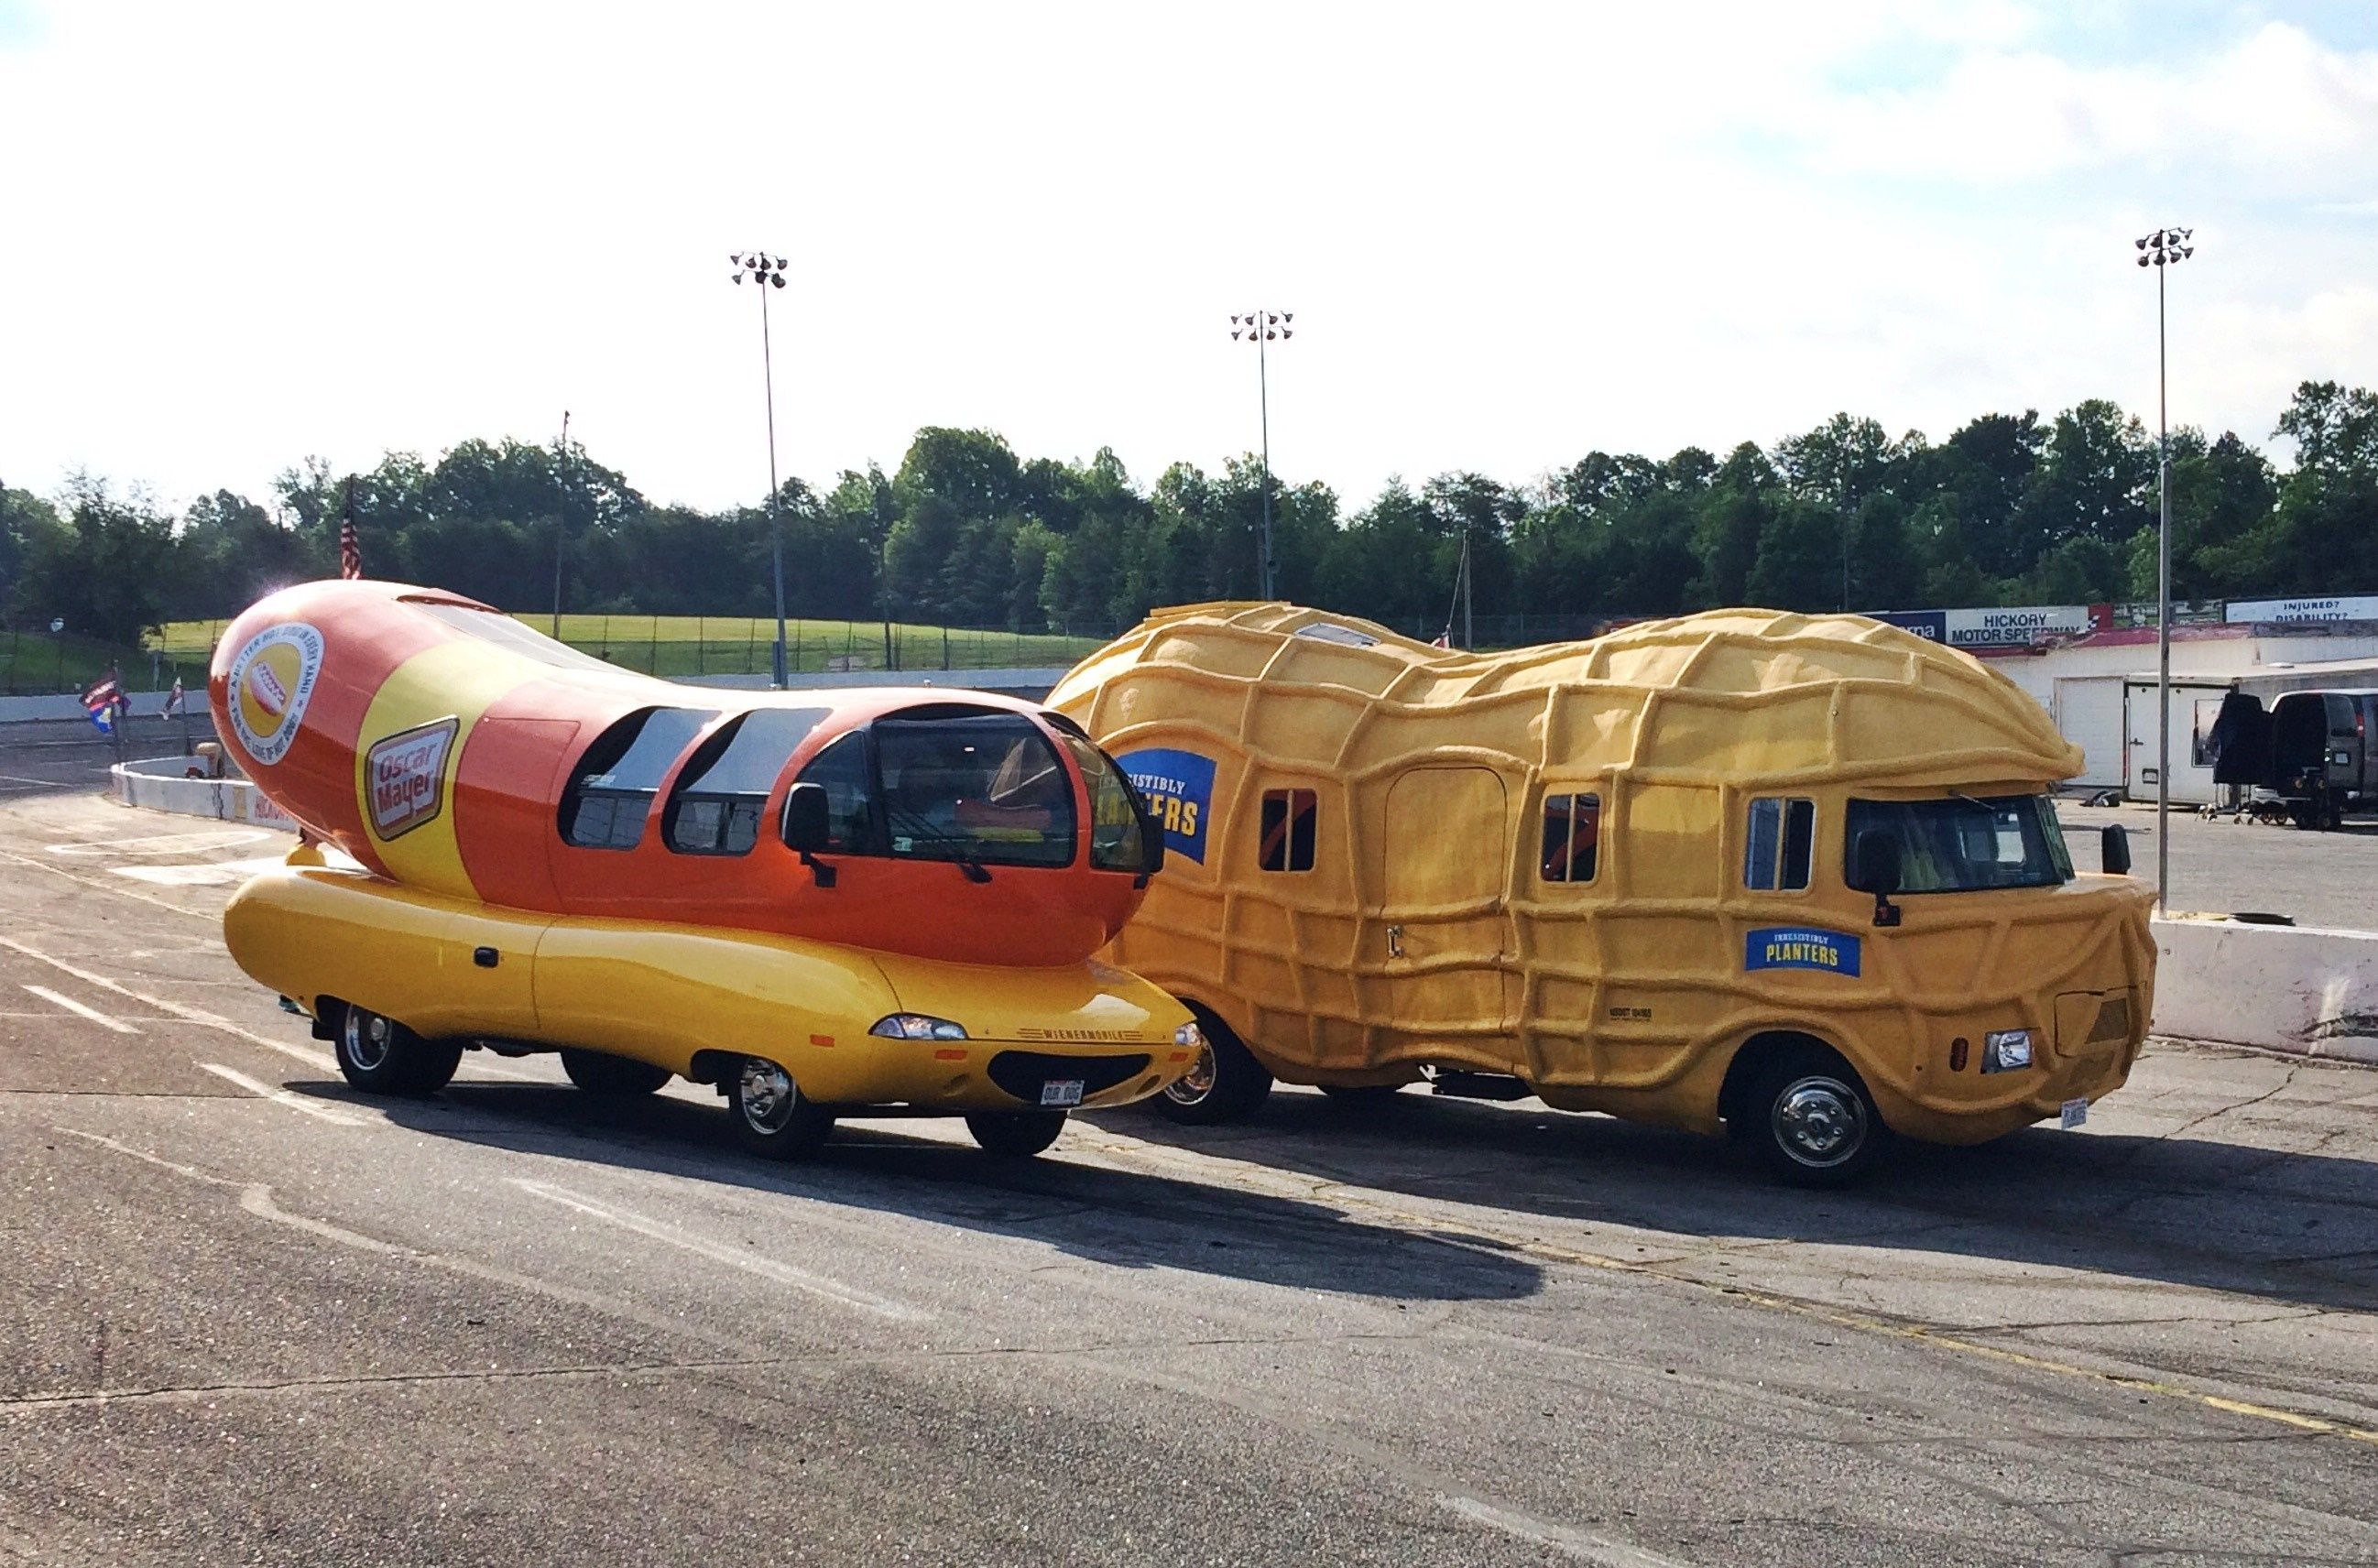 Penske Helps Iconic Wienermobile and NUTmobile Roll into Summer